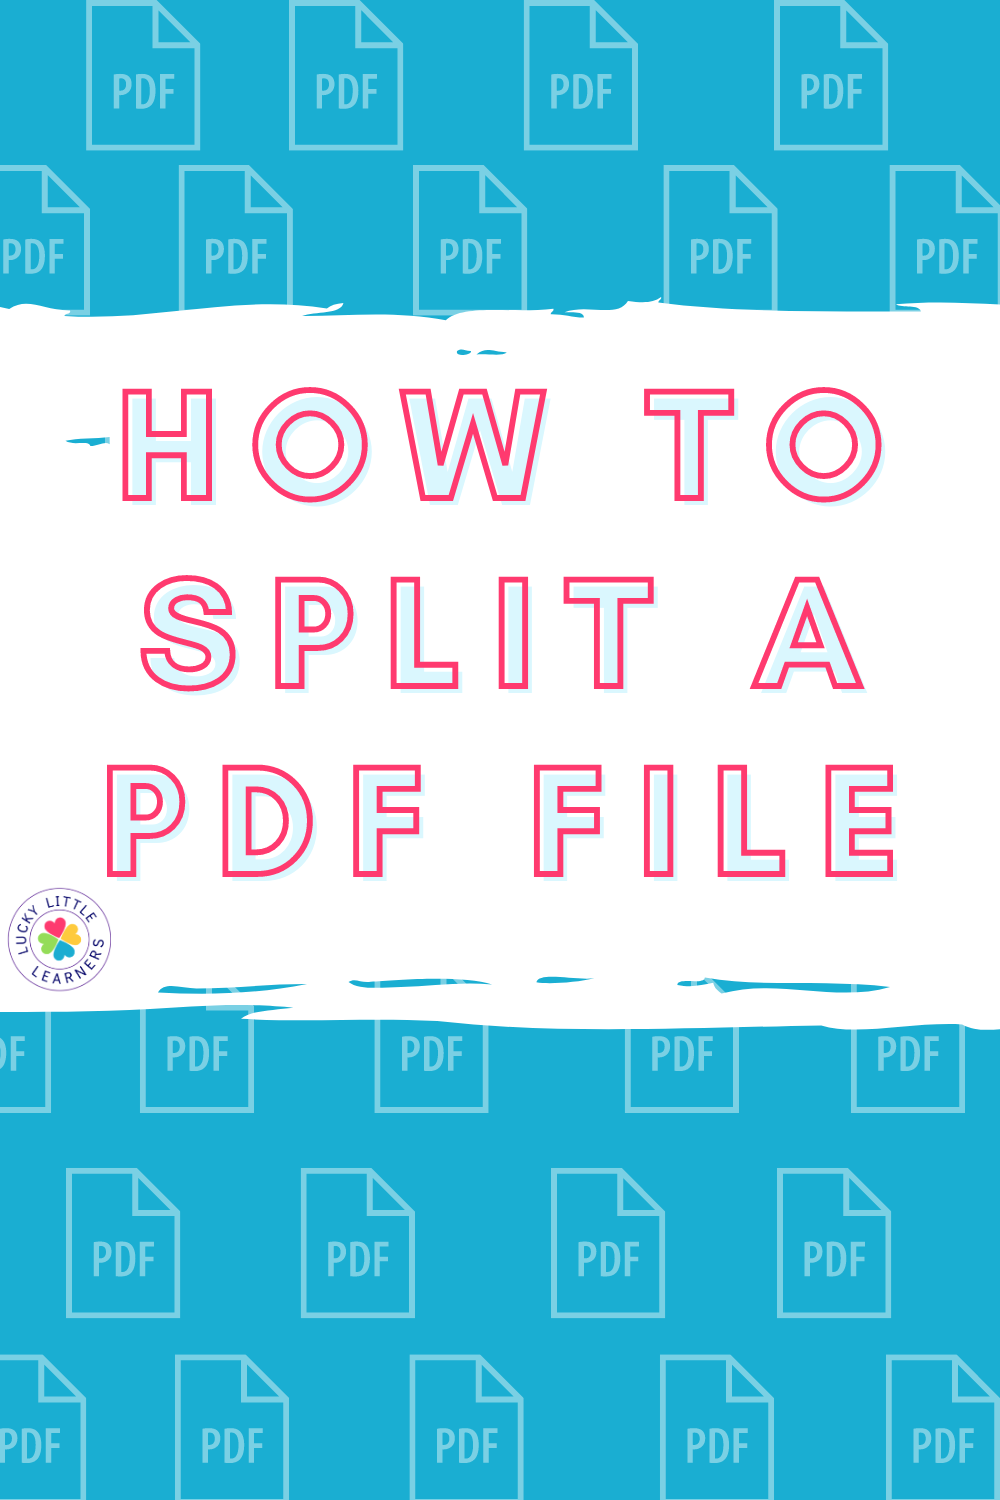 When teaching virtually it can be beneficial to pull from many different resources for lessons. Some PDF file resources are full of amazing content, but this can also mean they are LONG! Want to use a few specific pages of a PDF file in your lesson? We have the perfect tech tip for you! This tip will allow you to share or print a single page of the file instead of having to share out the whole document with your students. Watch and learn below how to split a PDF file!